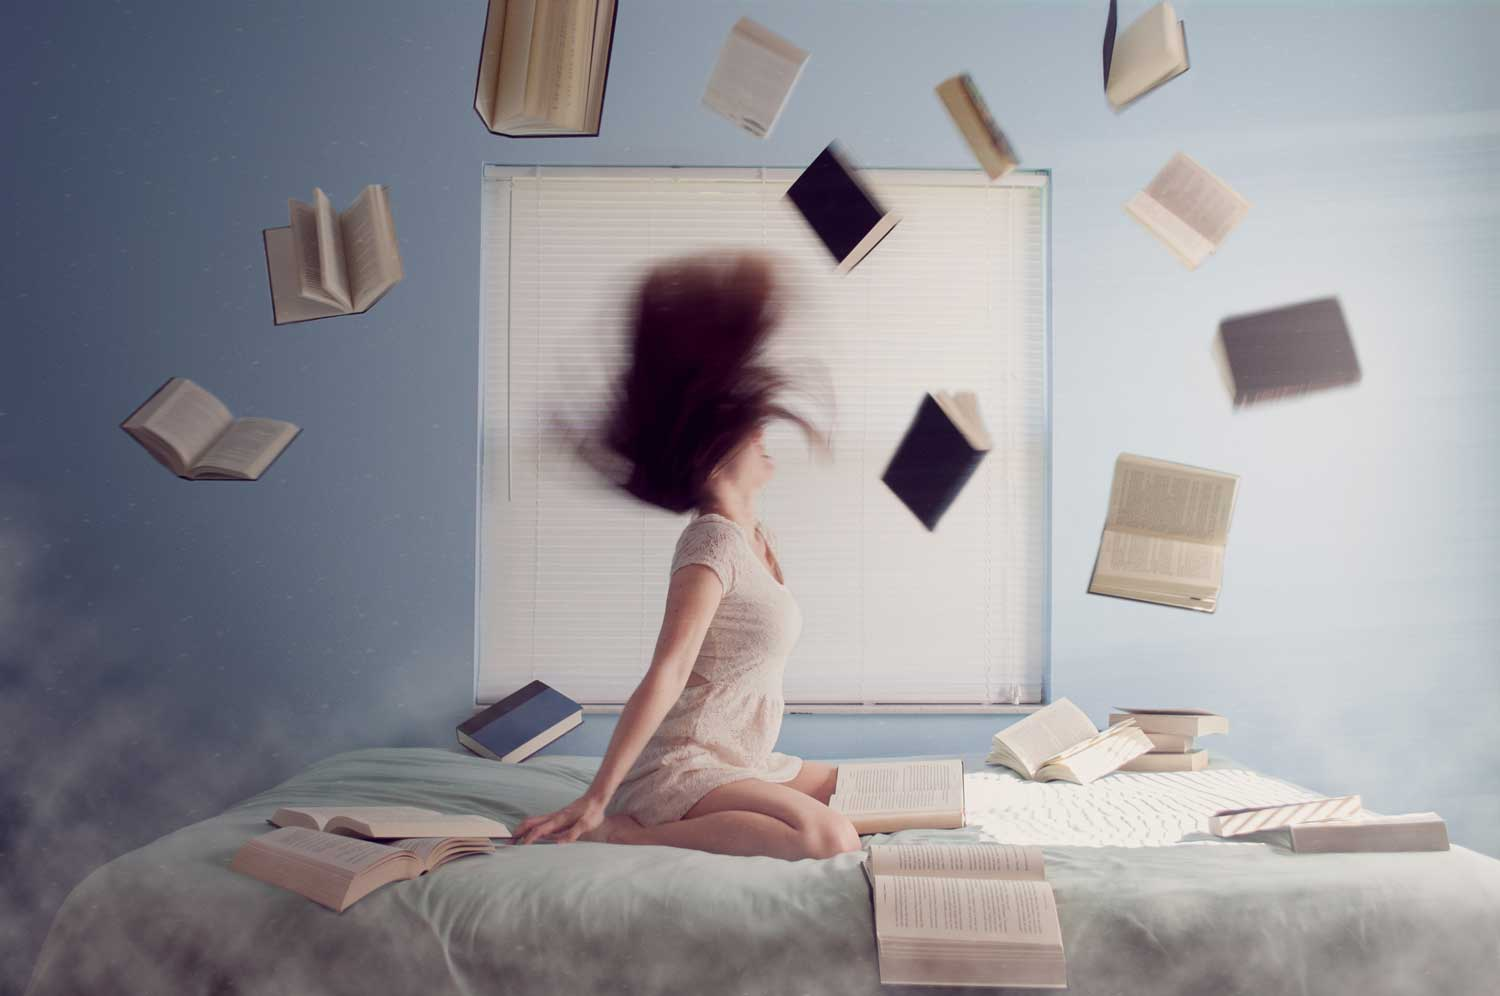 frustrated person throwing books